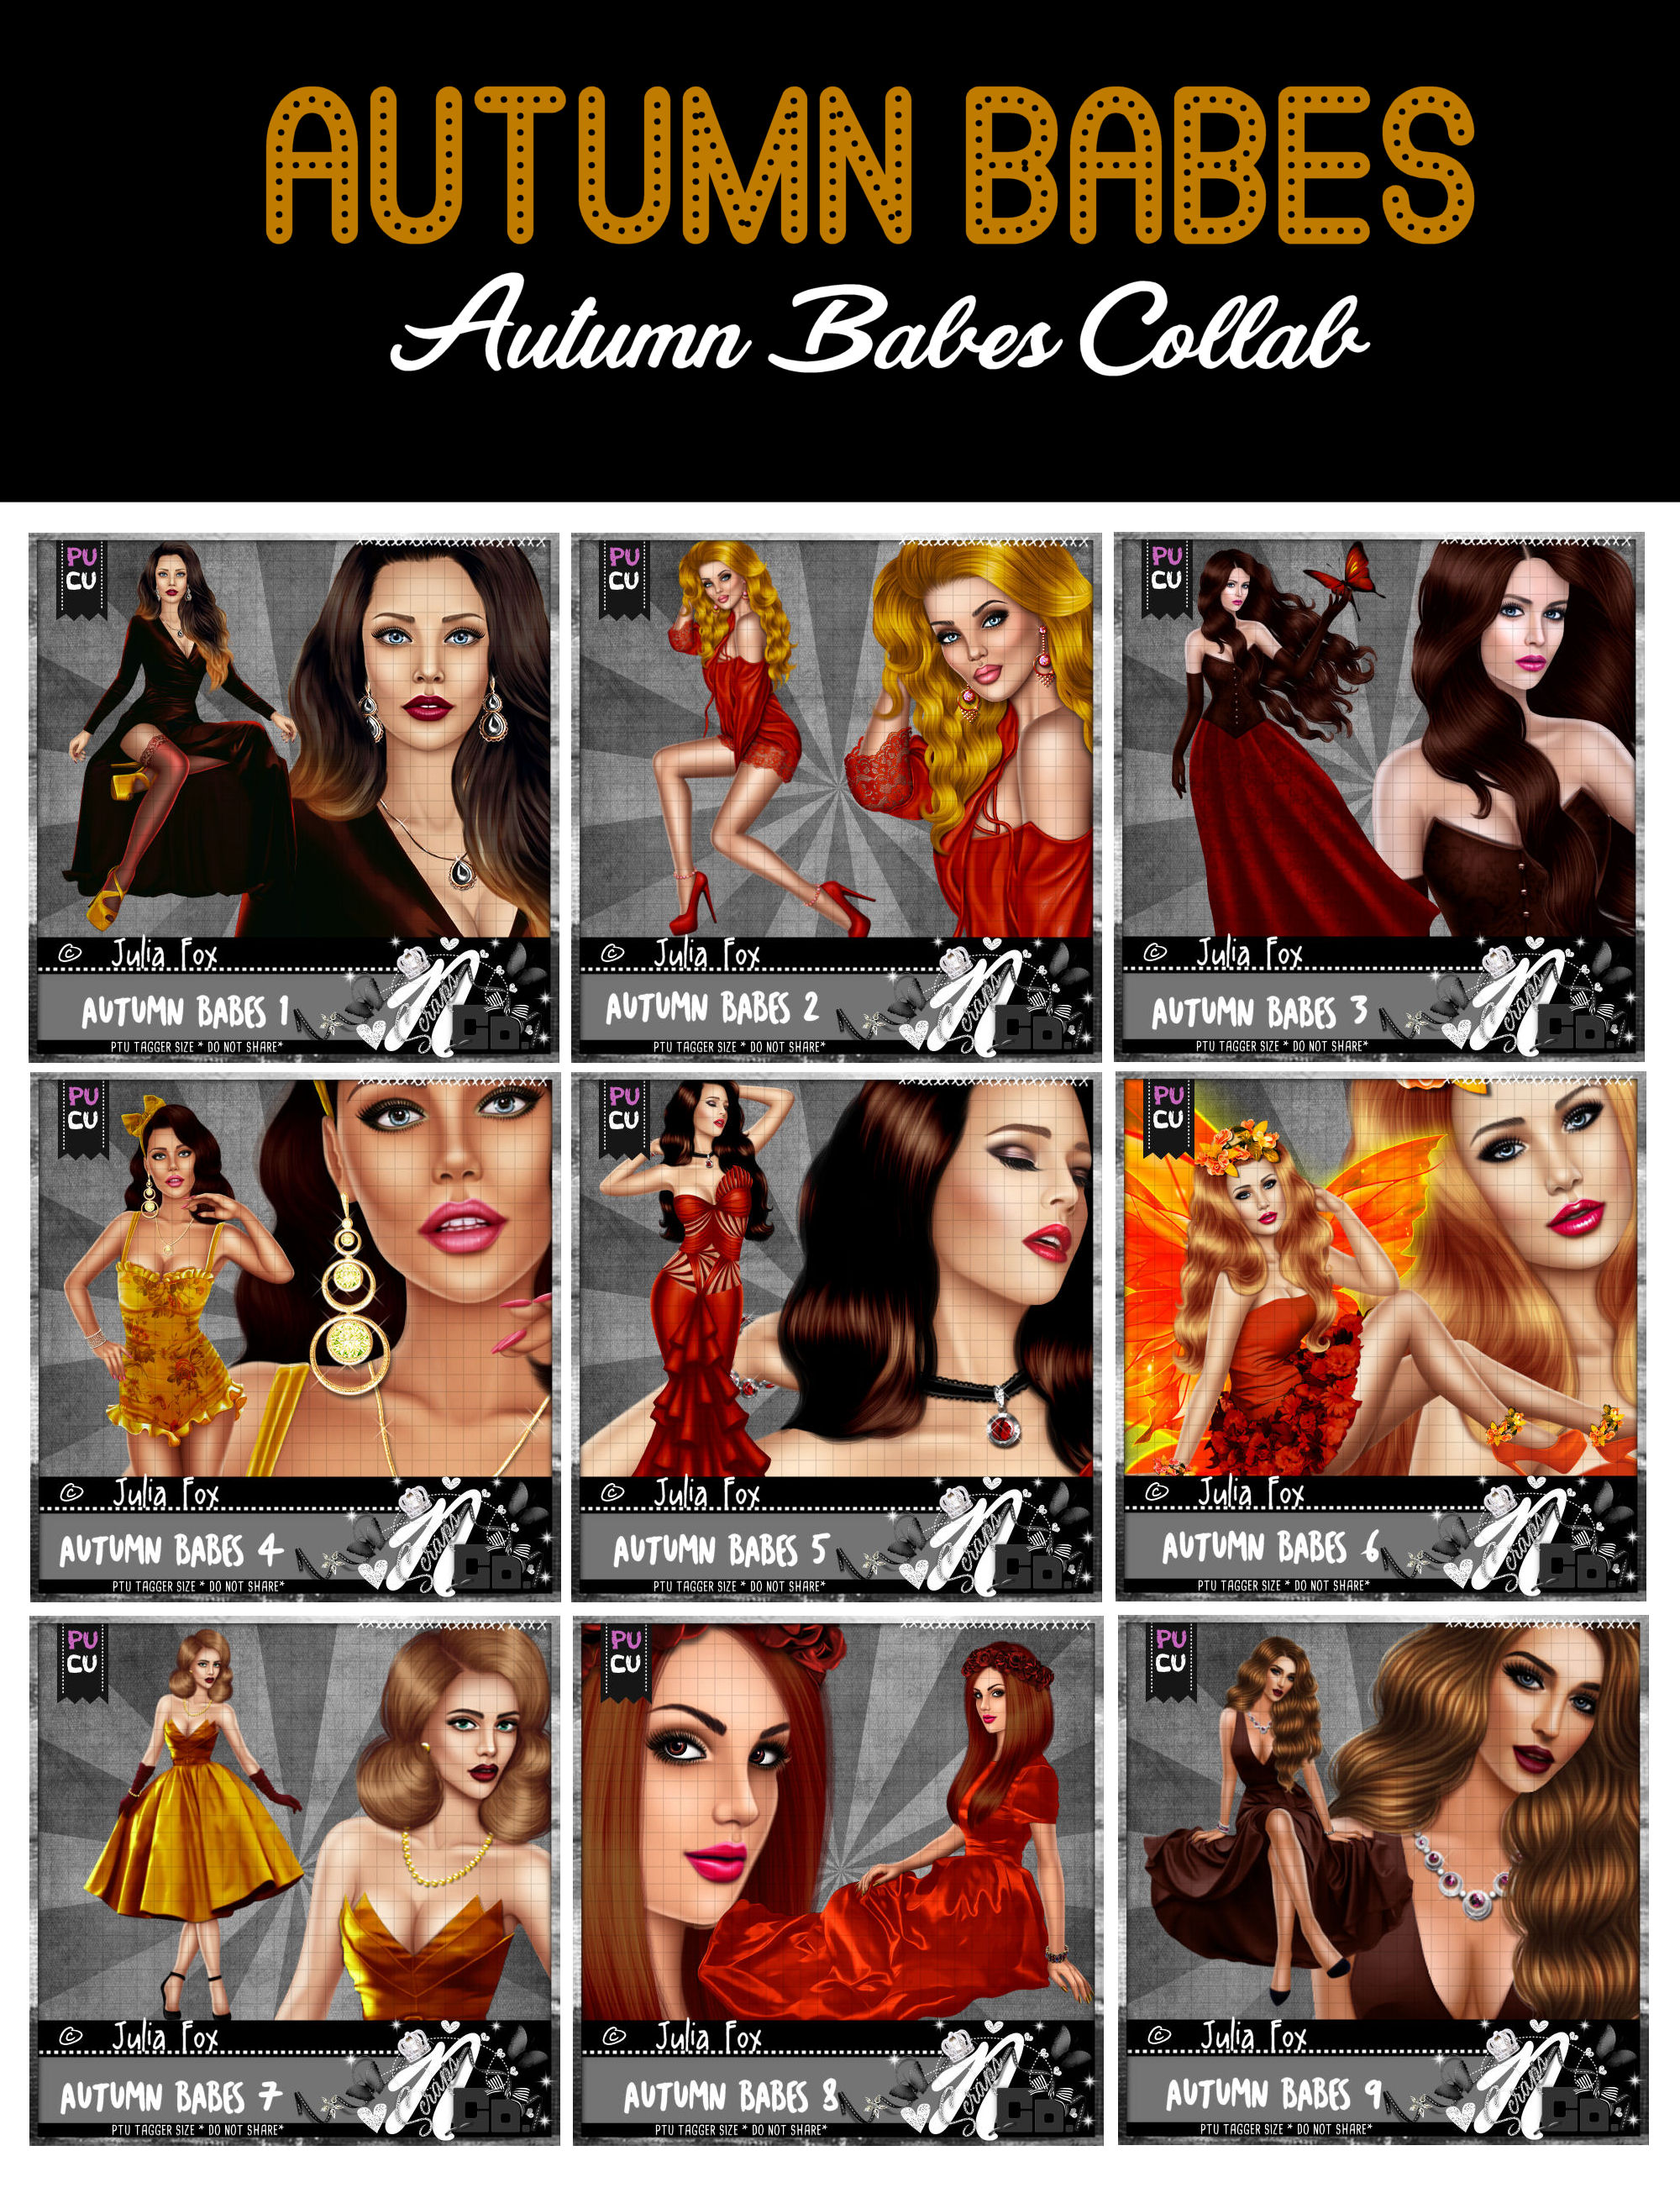 AUTUMN BABES COLLAB